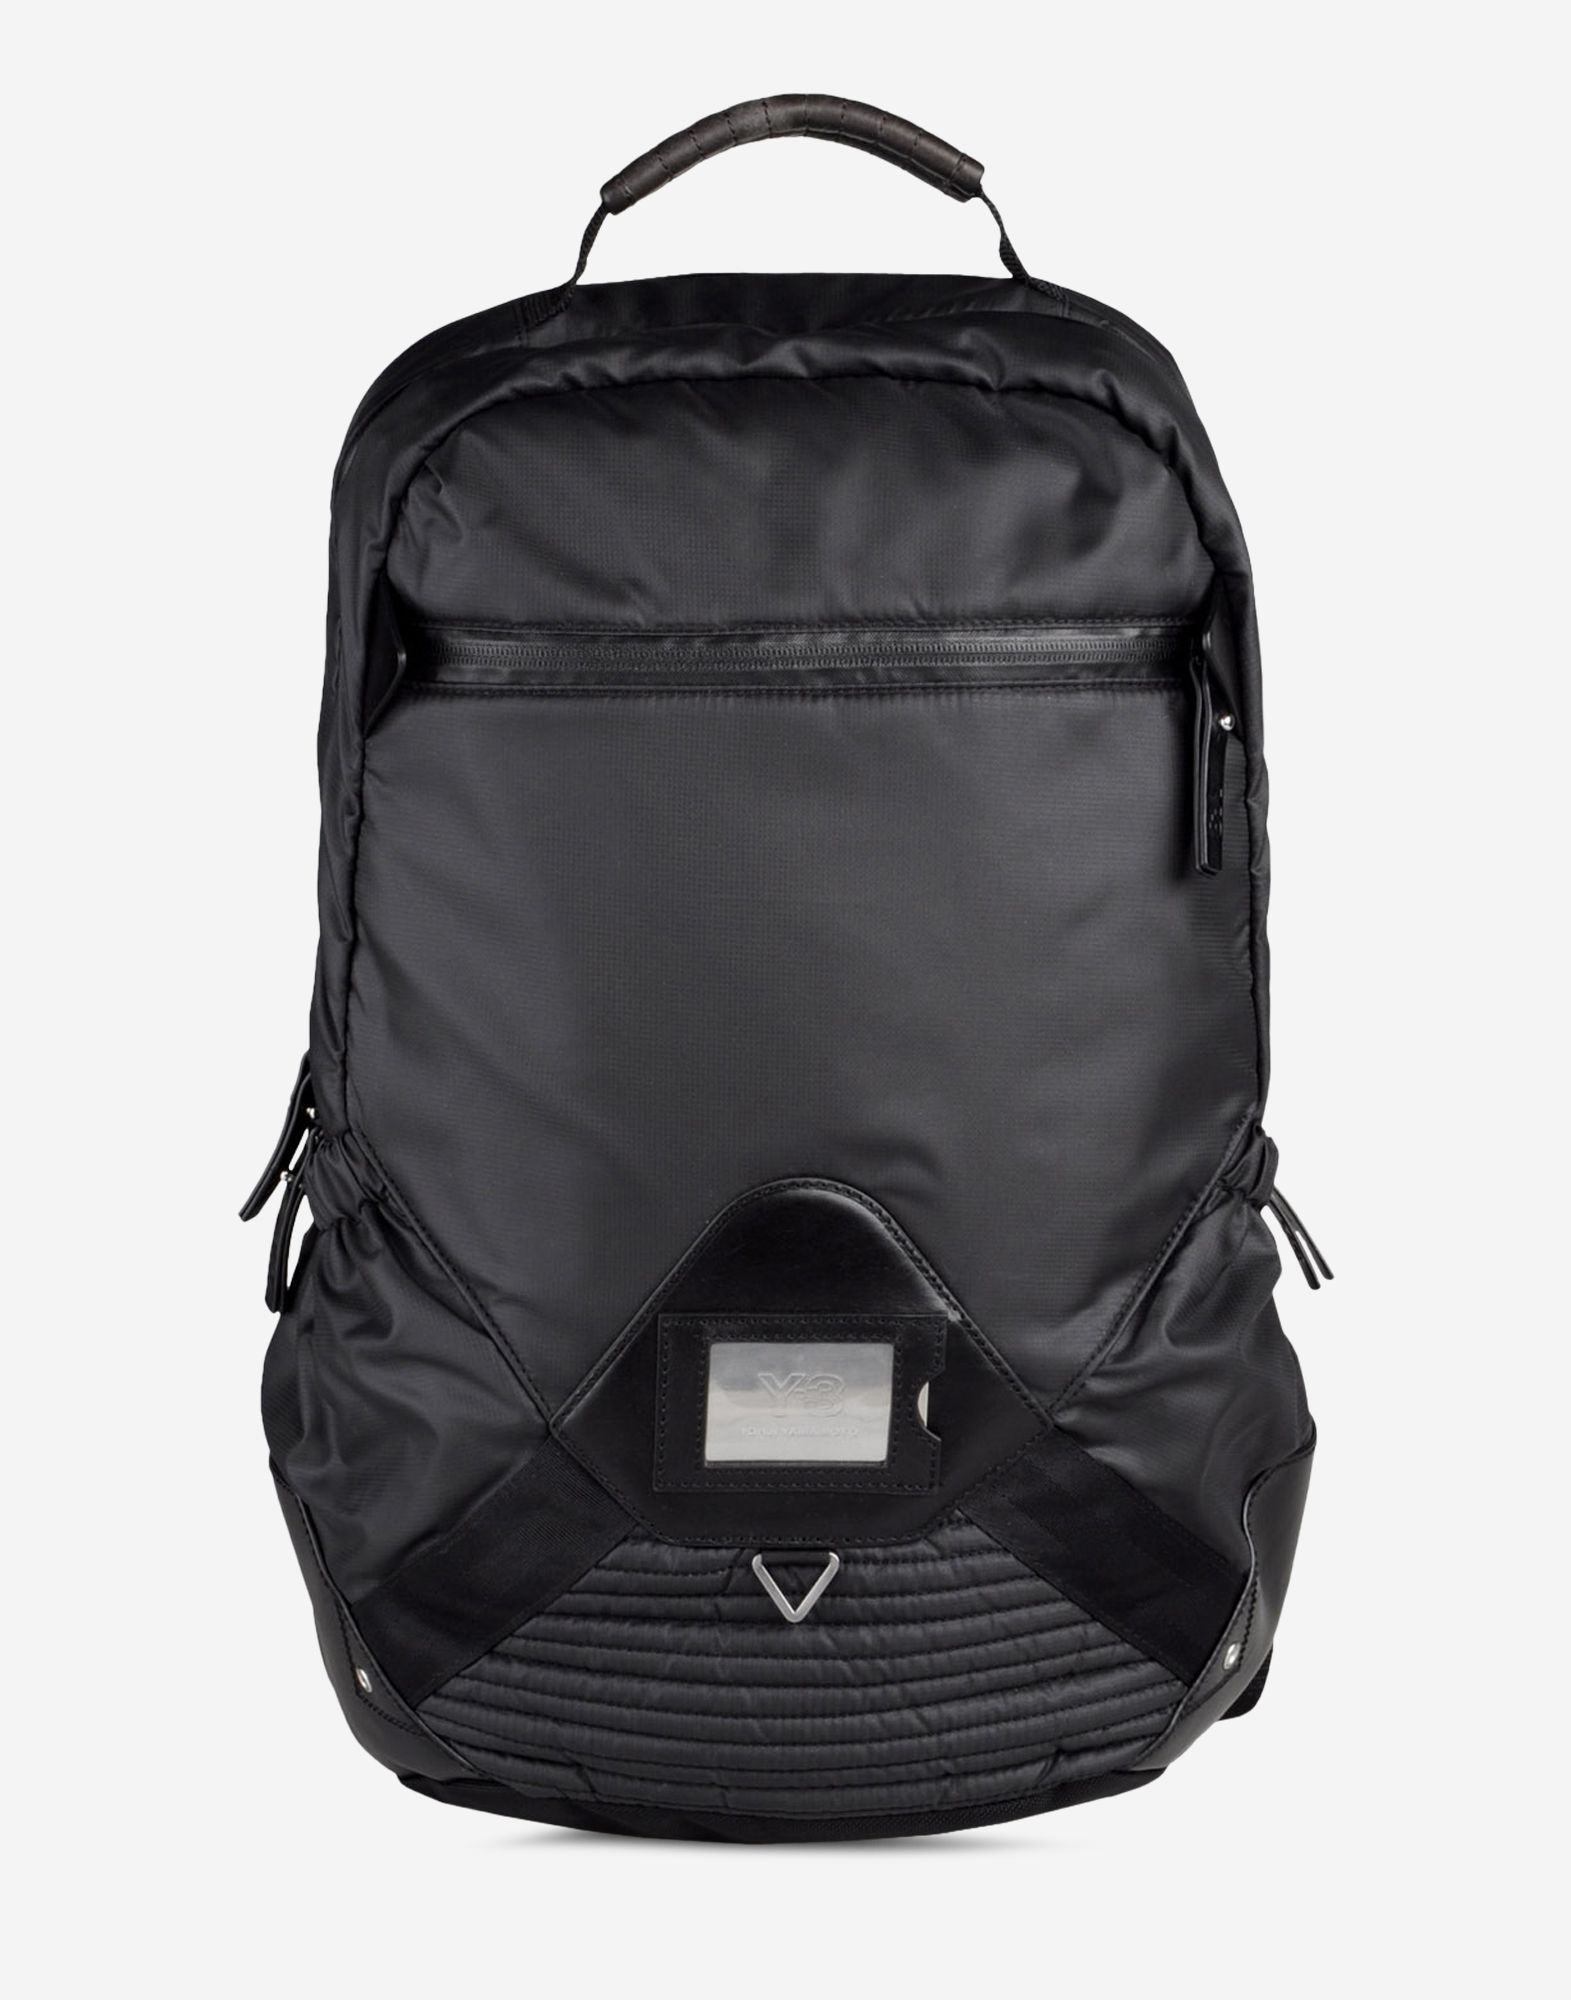 y 3 mobility backpack 2 backpacks for men adidas y 3 official store